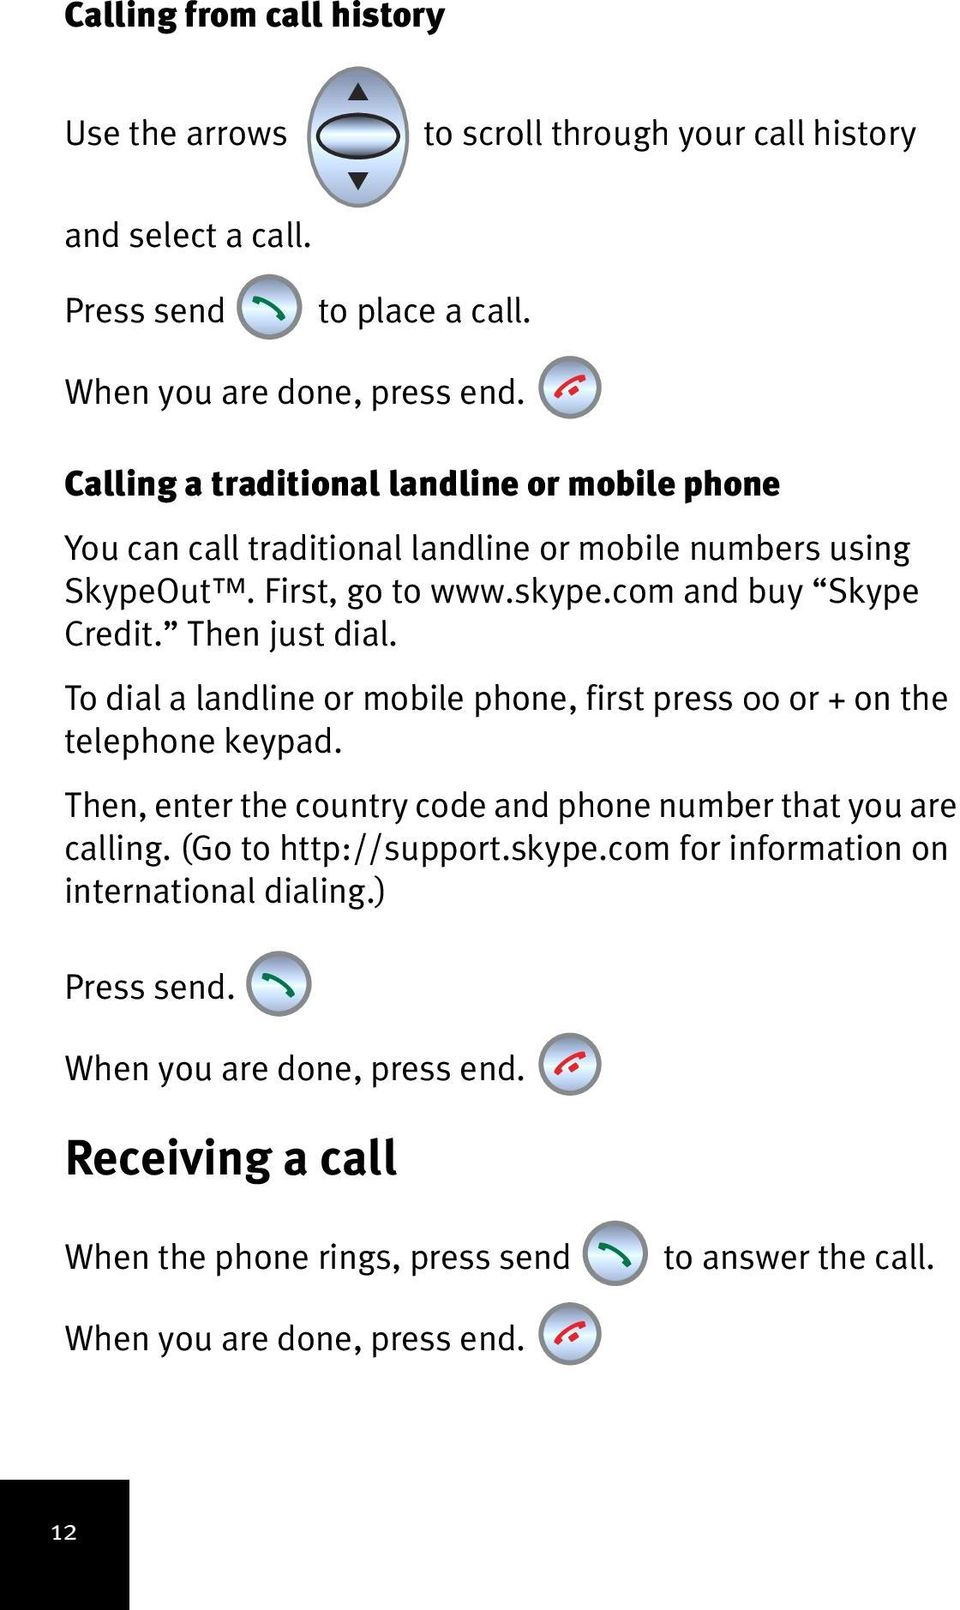 Then just dial. To dial a landline or mobile phone, first press 00 or + on the telephone keypad. Then, enter the country code and phone number that you are calling.